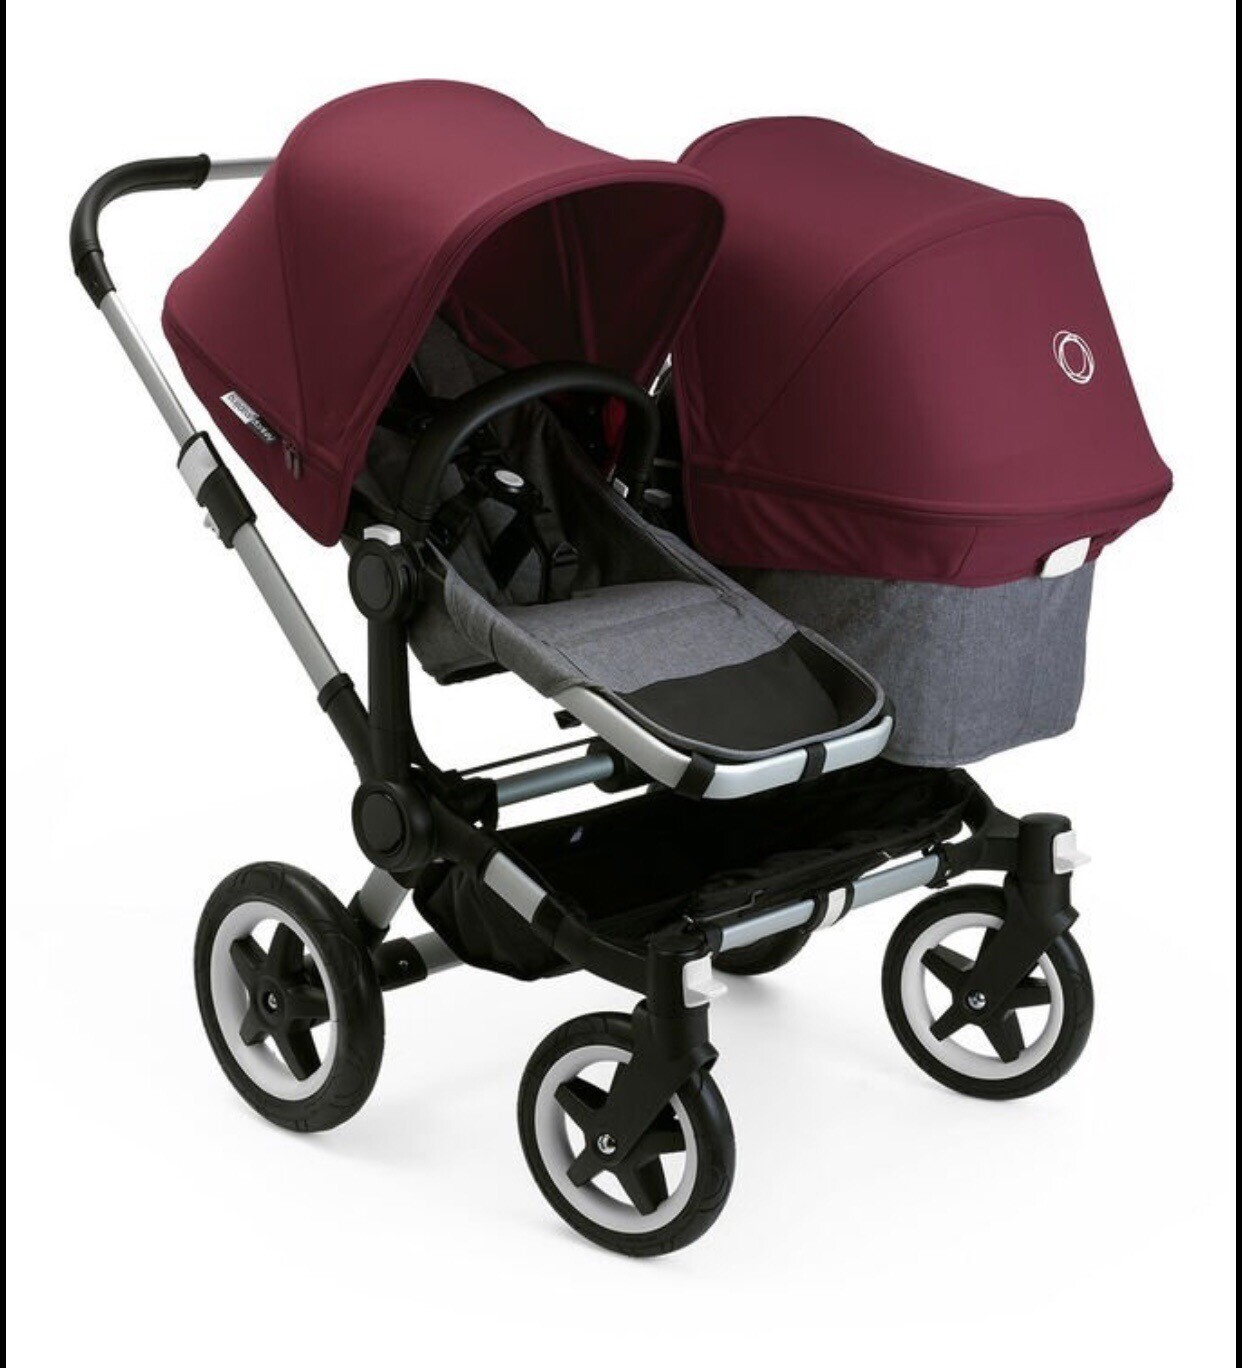 Test Model For Sale Bugaboo Donkey2 Mono/Duo Extension